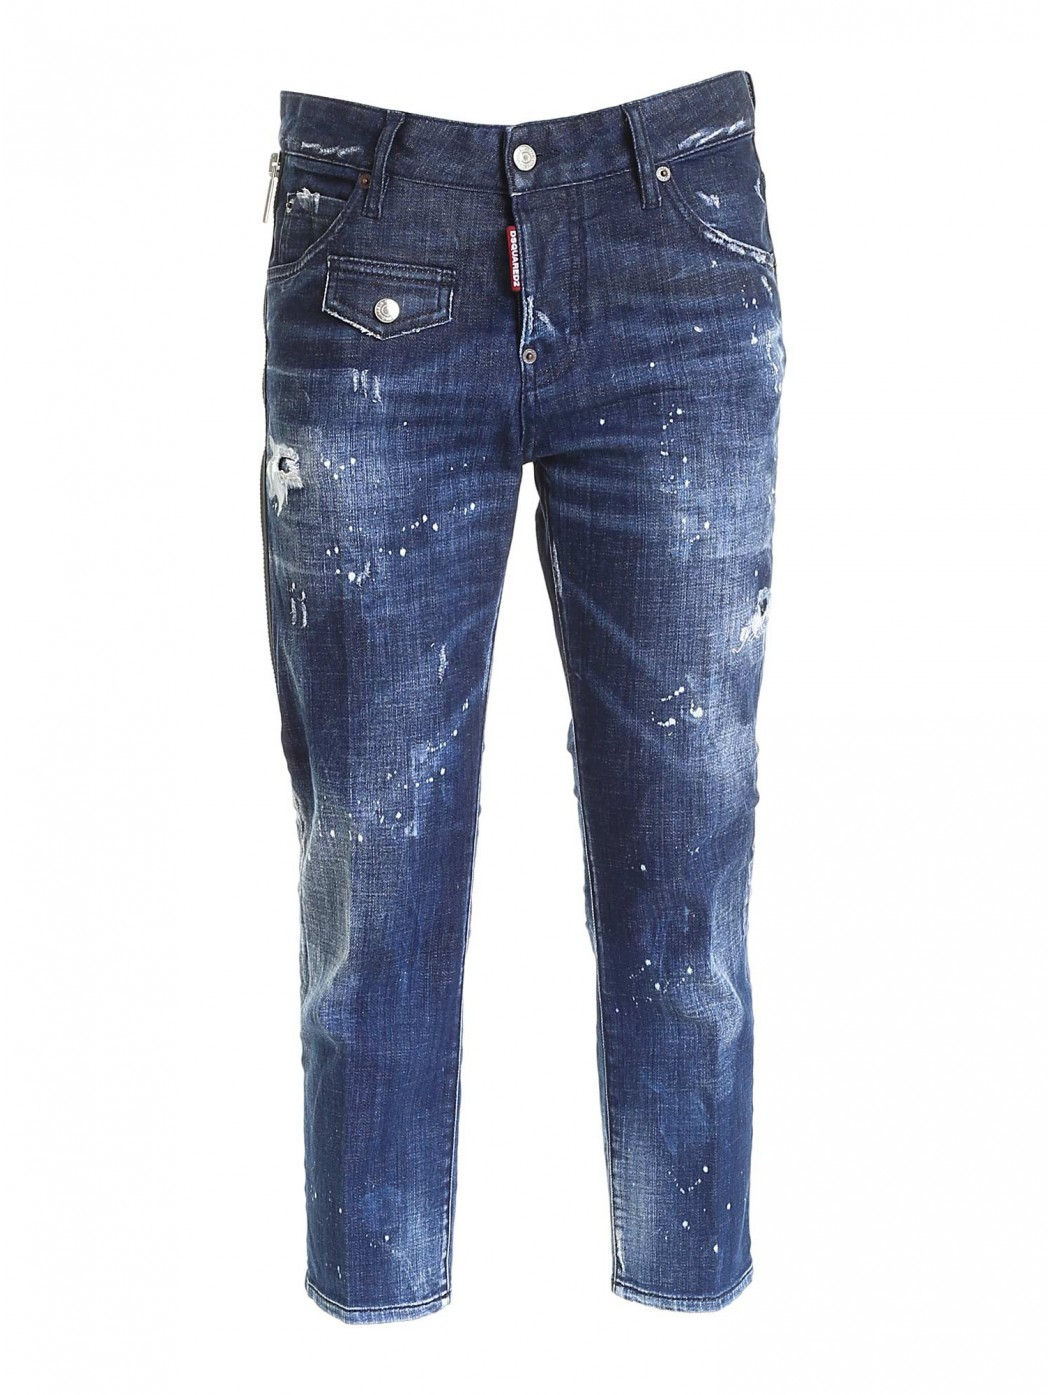 JEANS COOL CROPPED DESTROYED BLU DSQUARED2 S75LB0438S30342 470